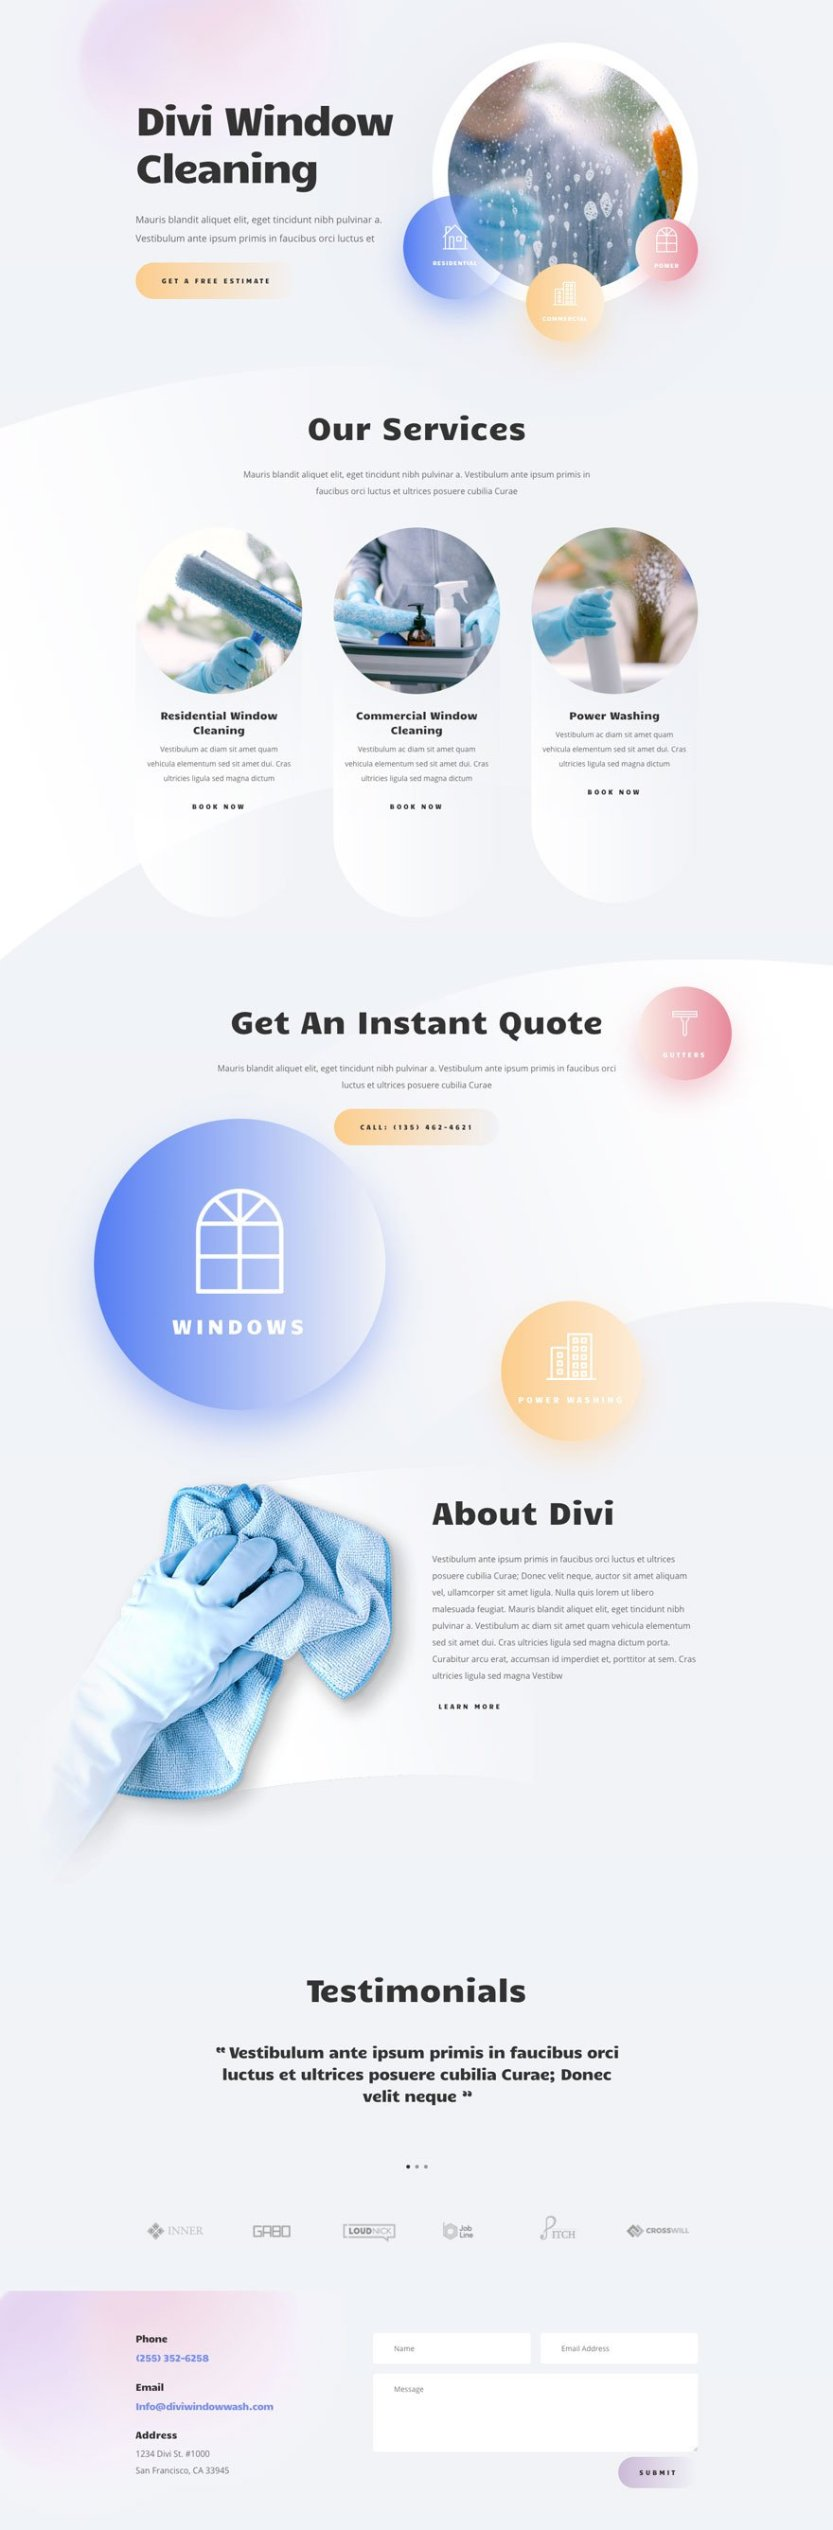 divi Window Cleaning layout pack